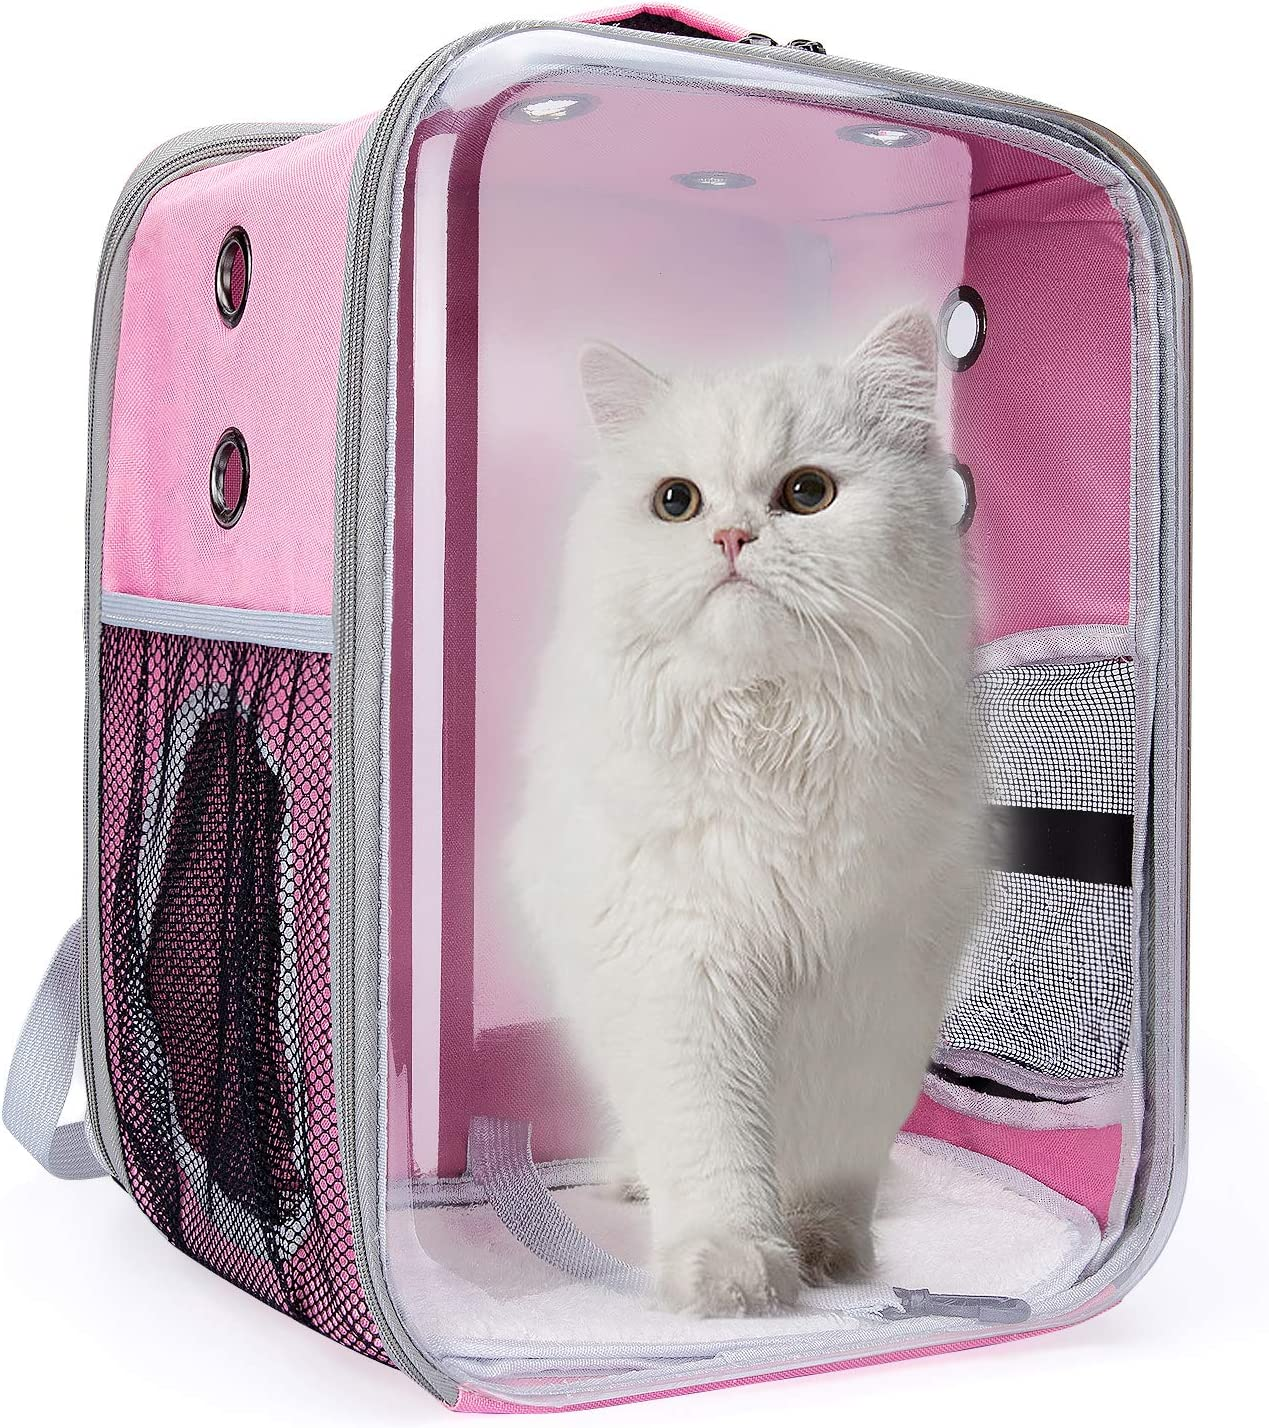 Dubulle Cat Rapid rise Backpack Carrier Sma Dog for Small New arrival